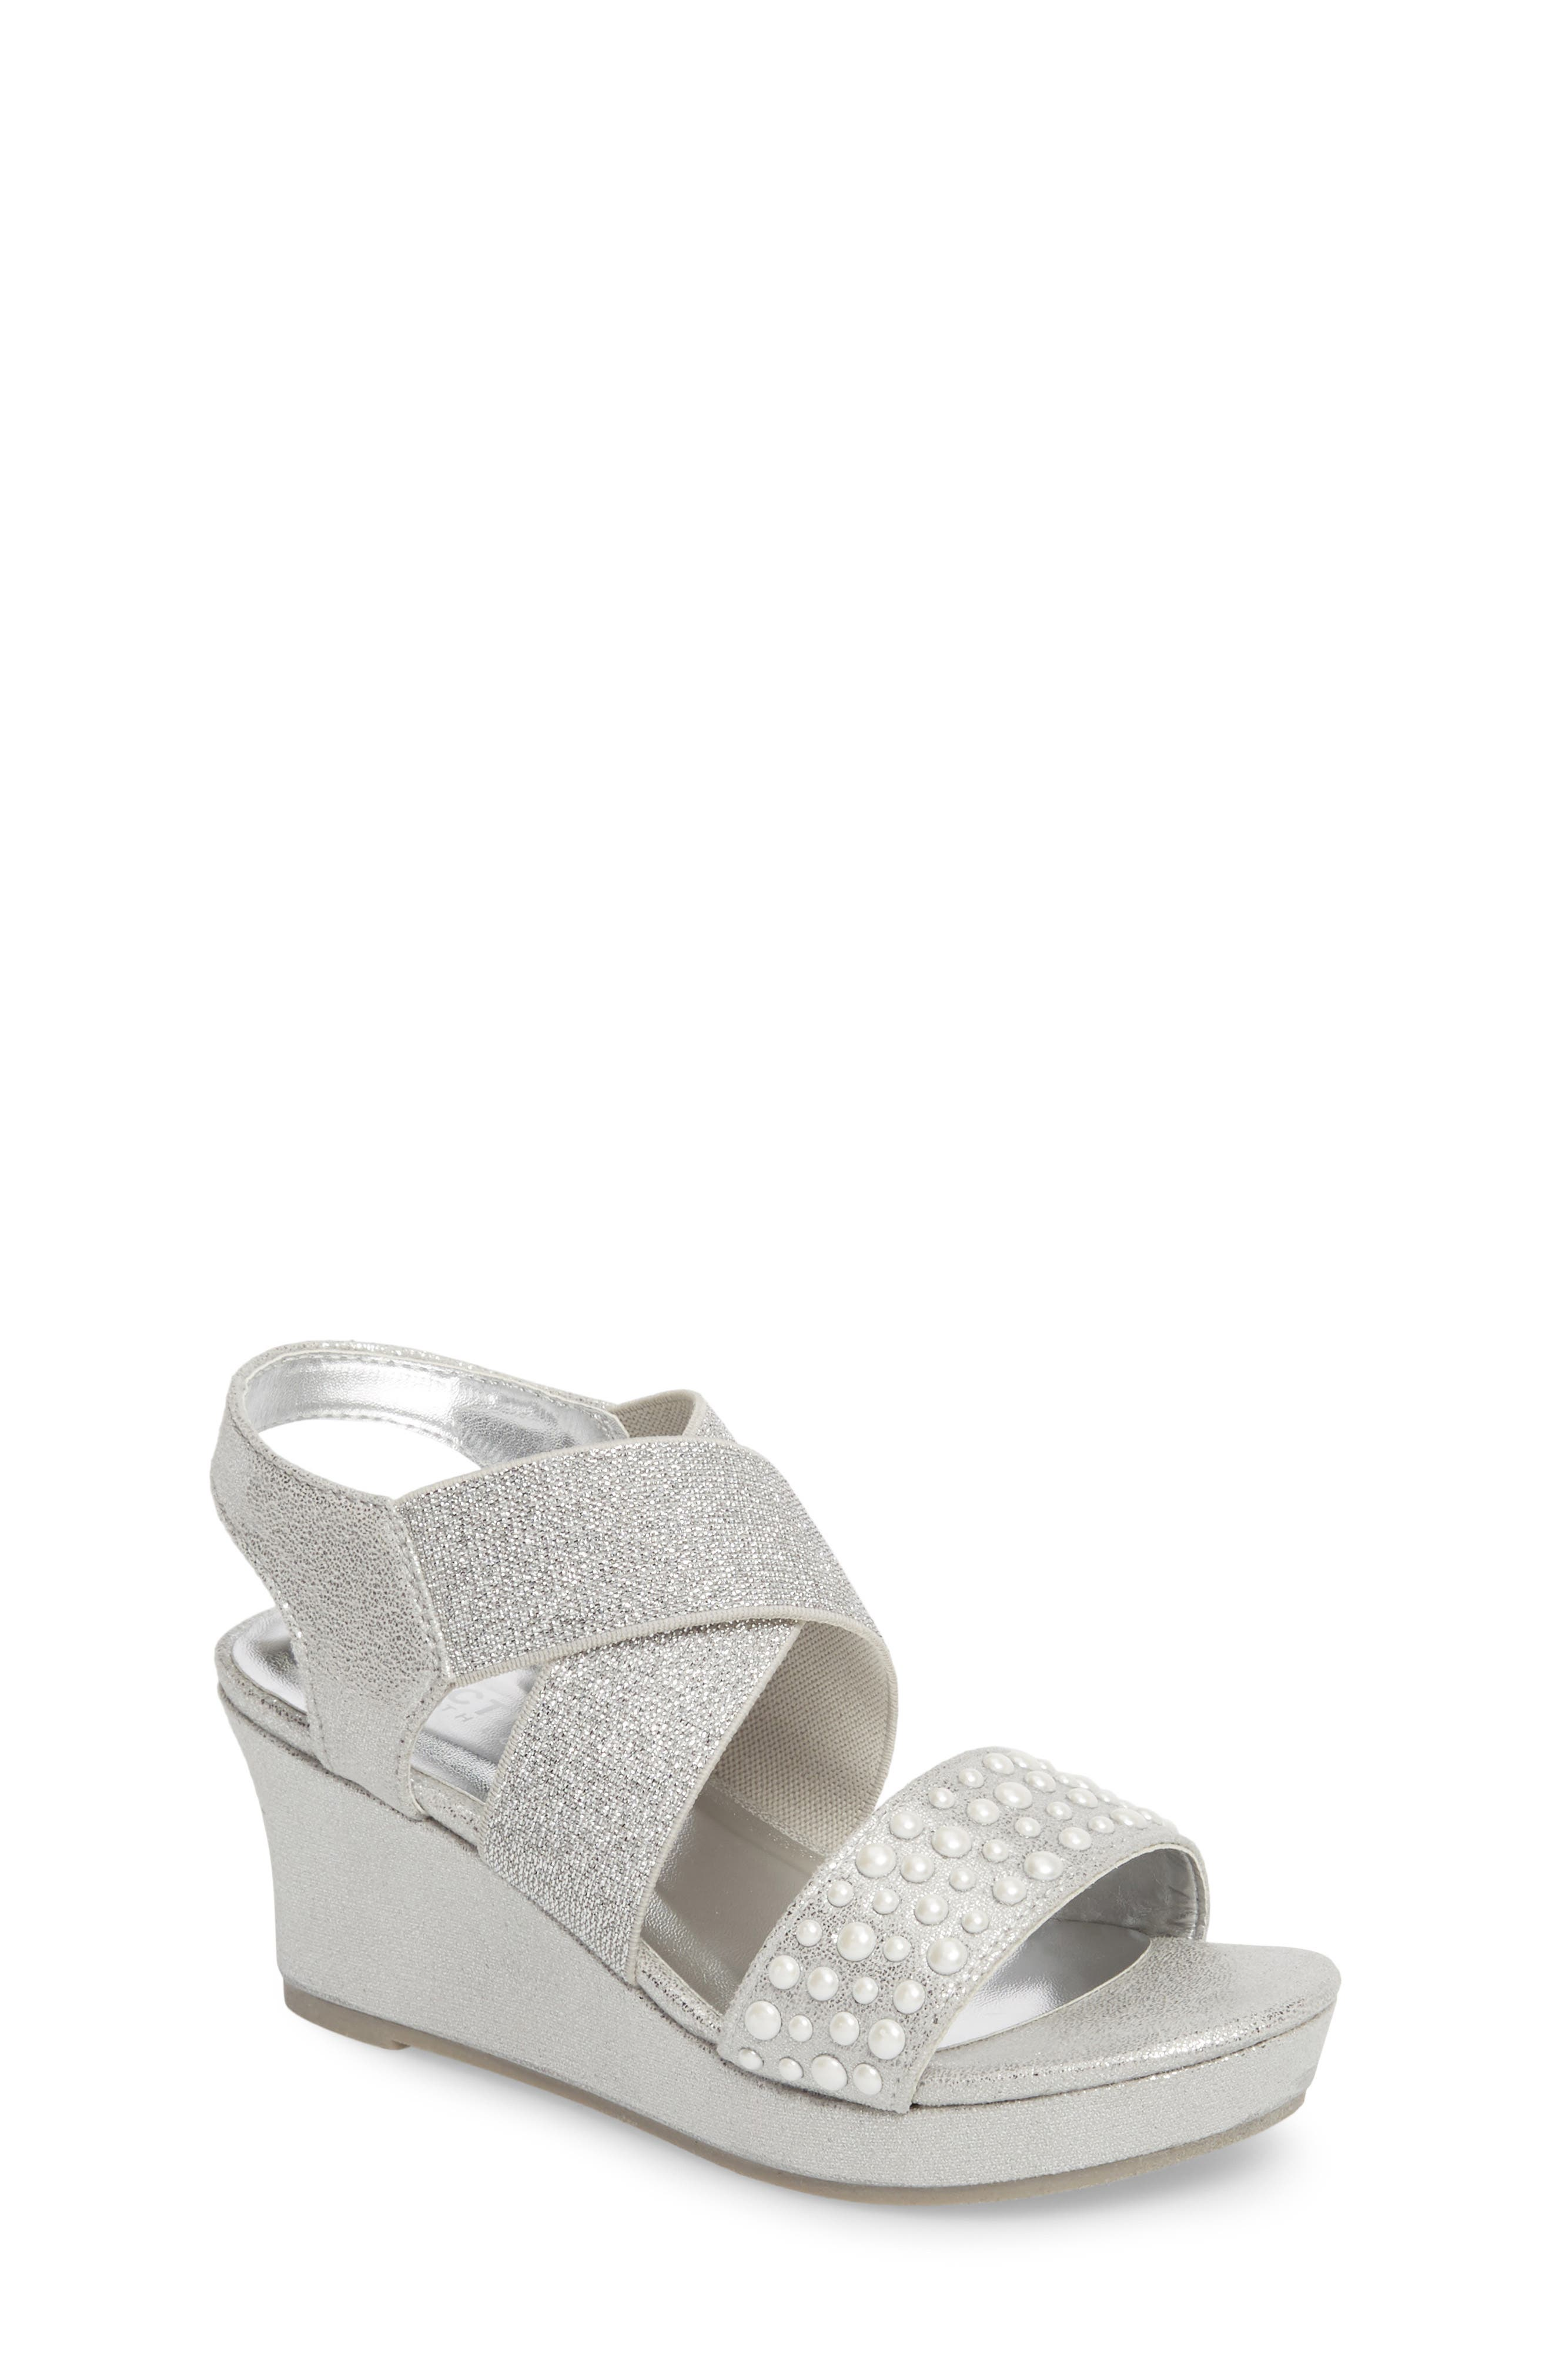 Reed Glimmer Wedge Sandal,                         Main,                         color, 044